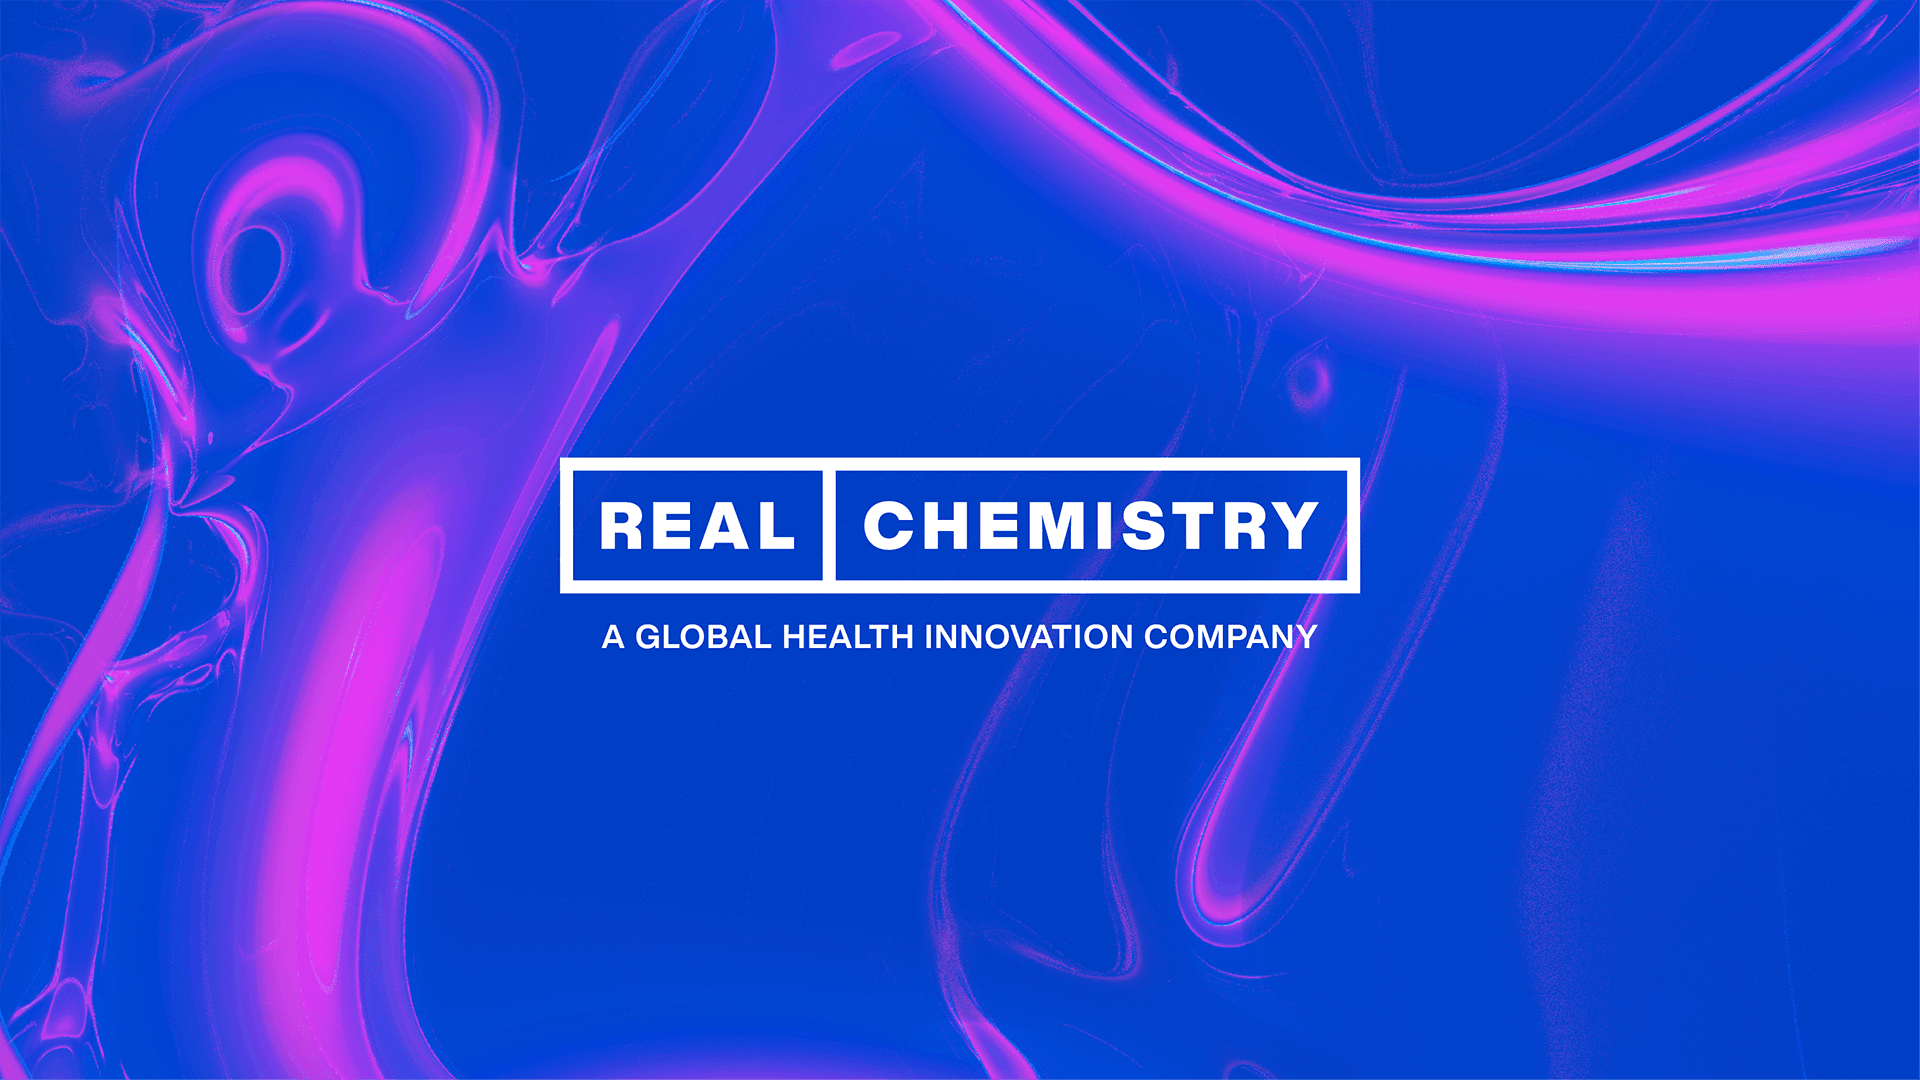 W2O rebrands as Real Chemistry